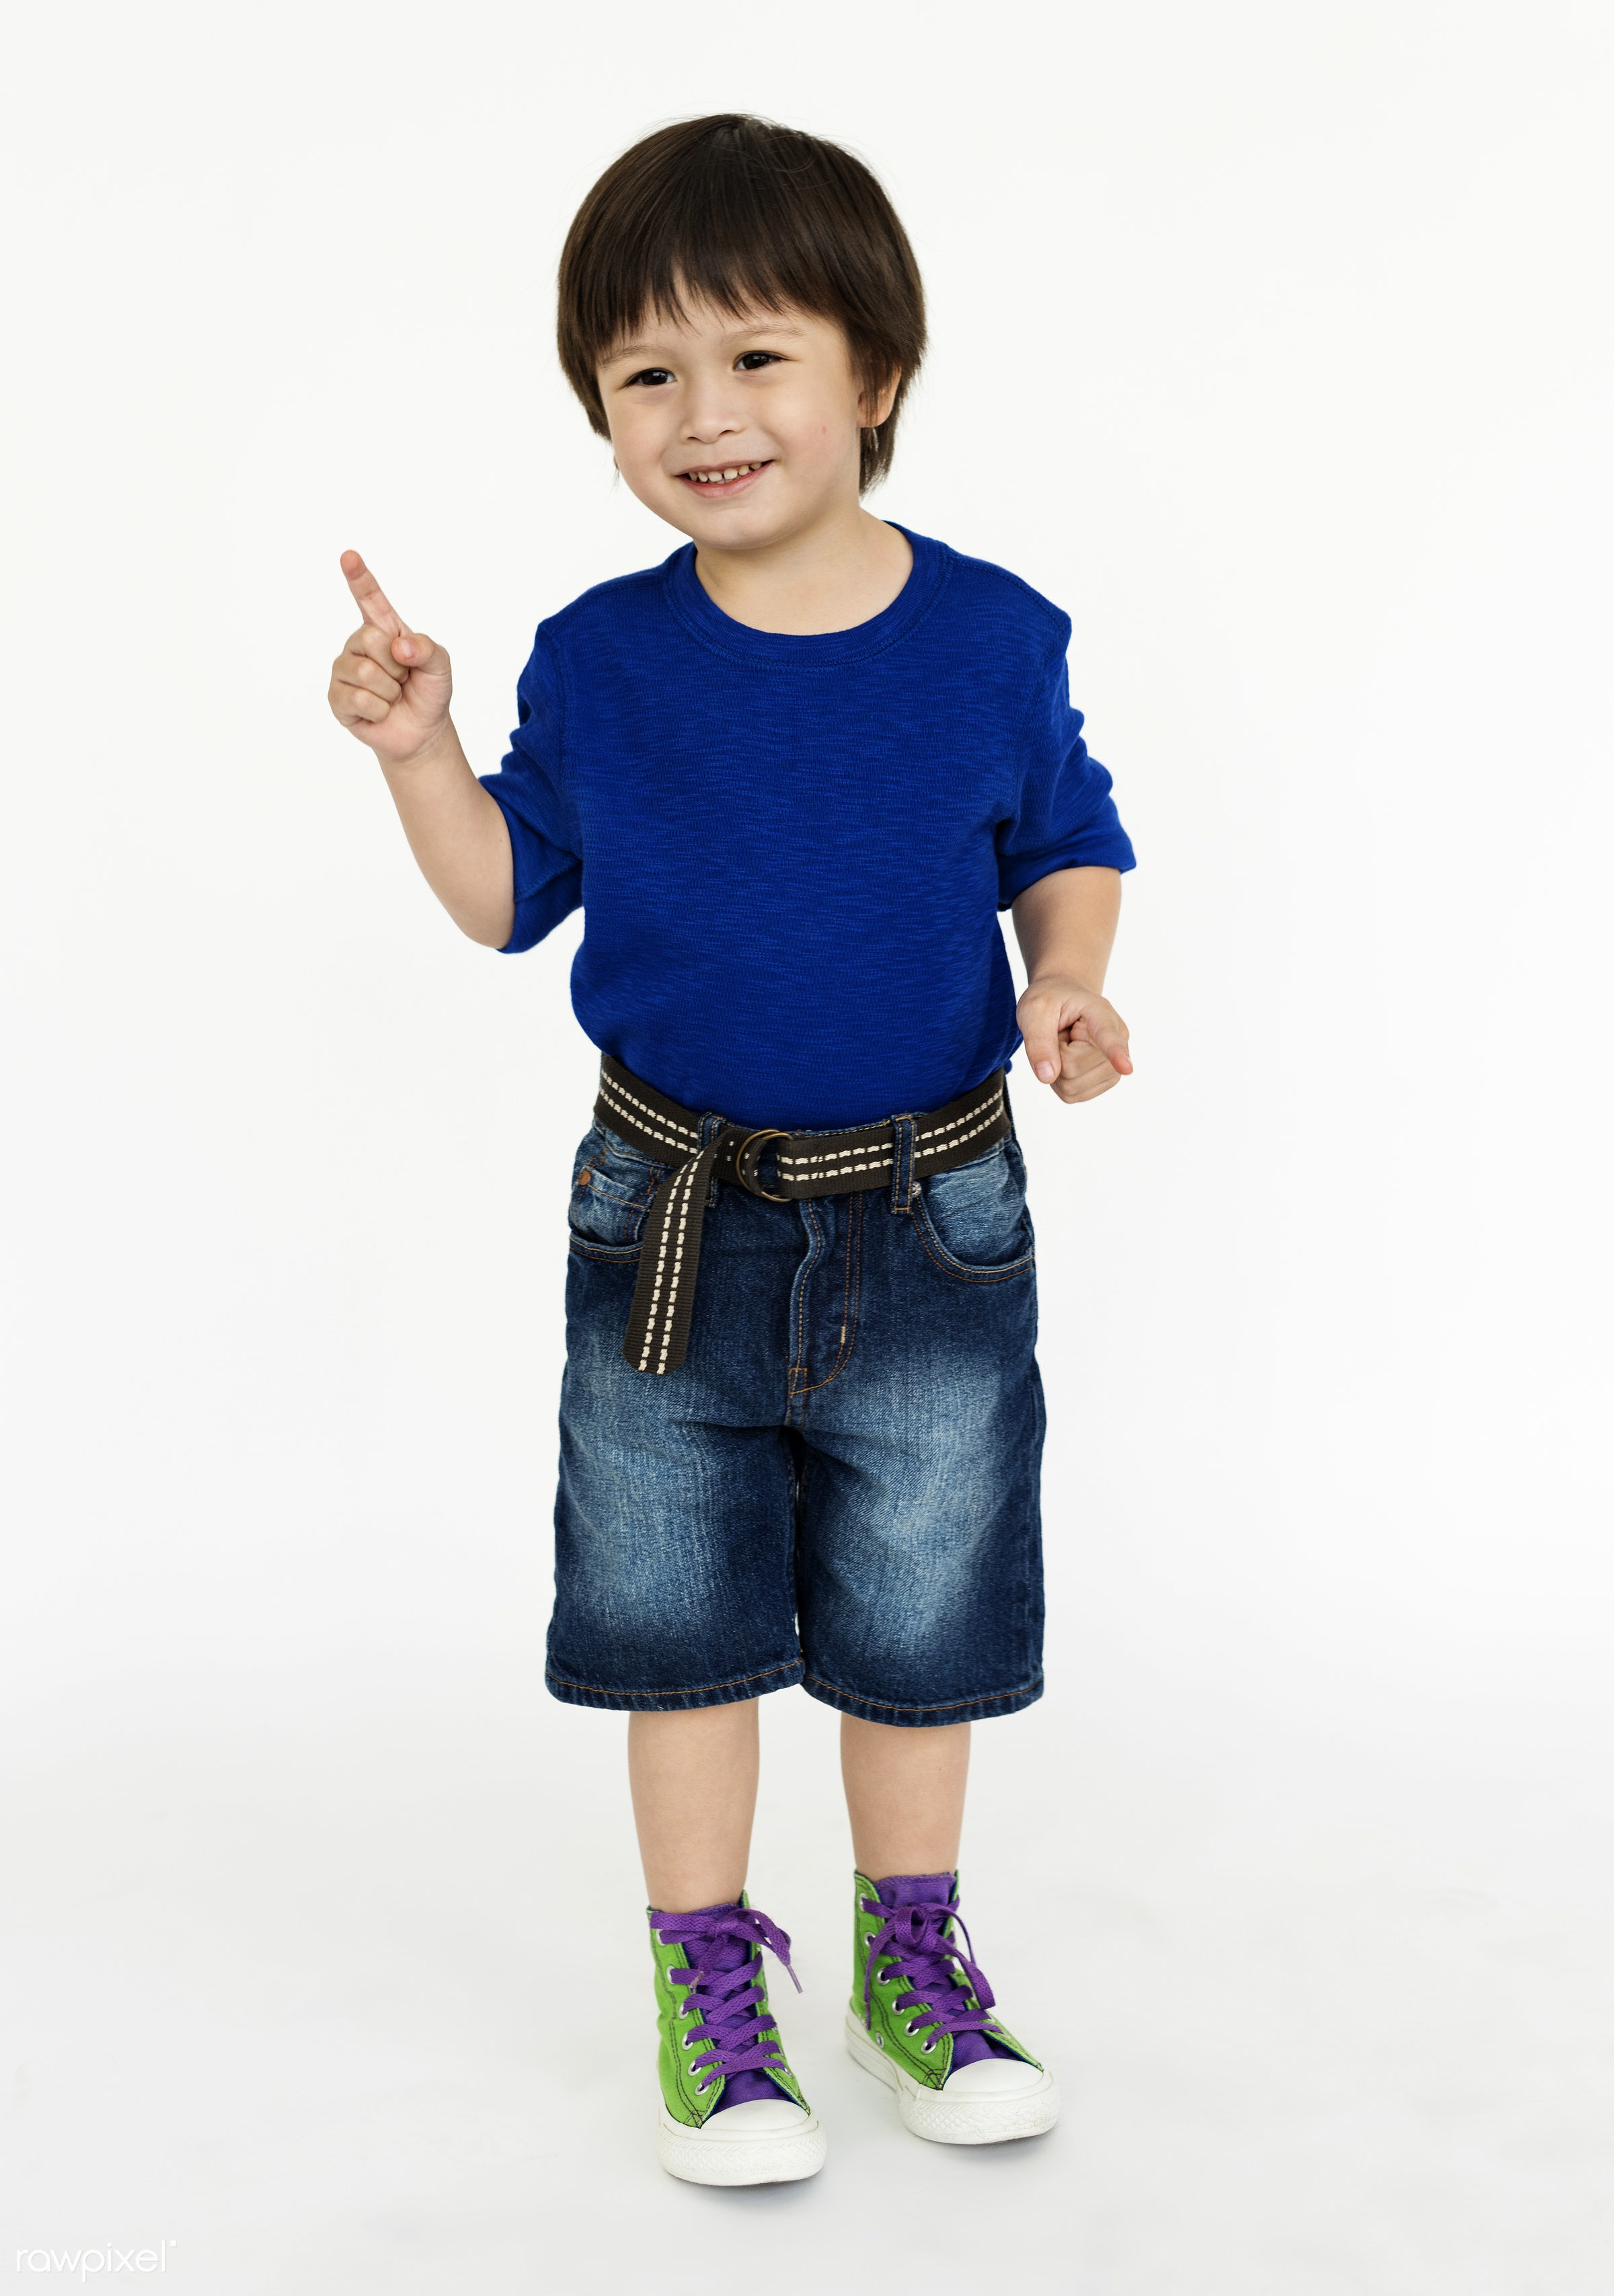 expression, studio, person, full length, isolated on white, cute, kid, asian, student, happy, casual, positive, smiling, man...